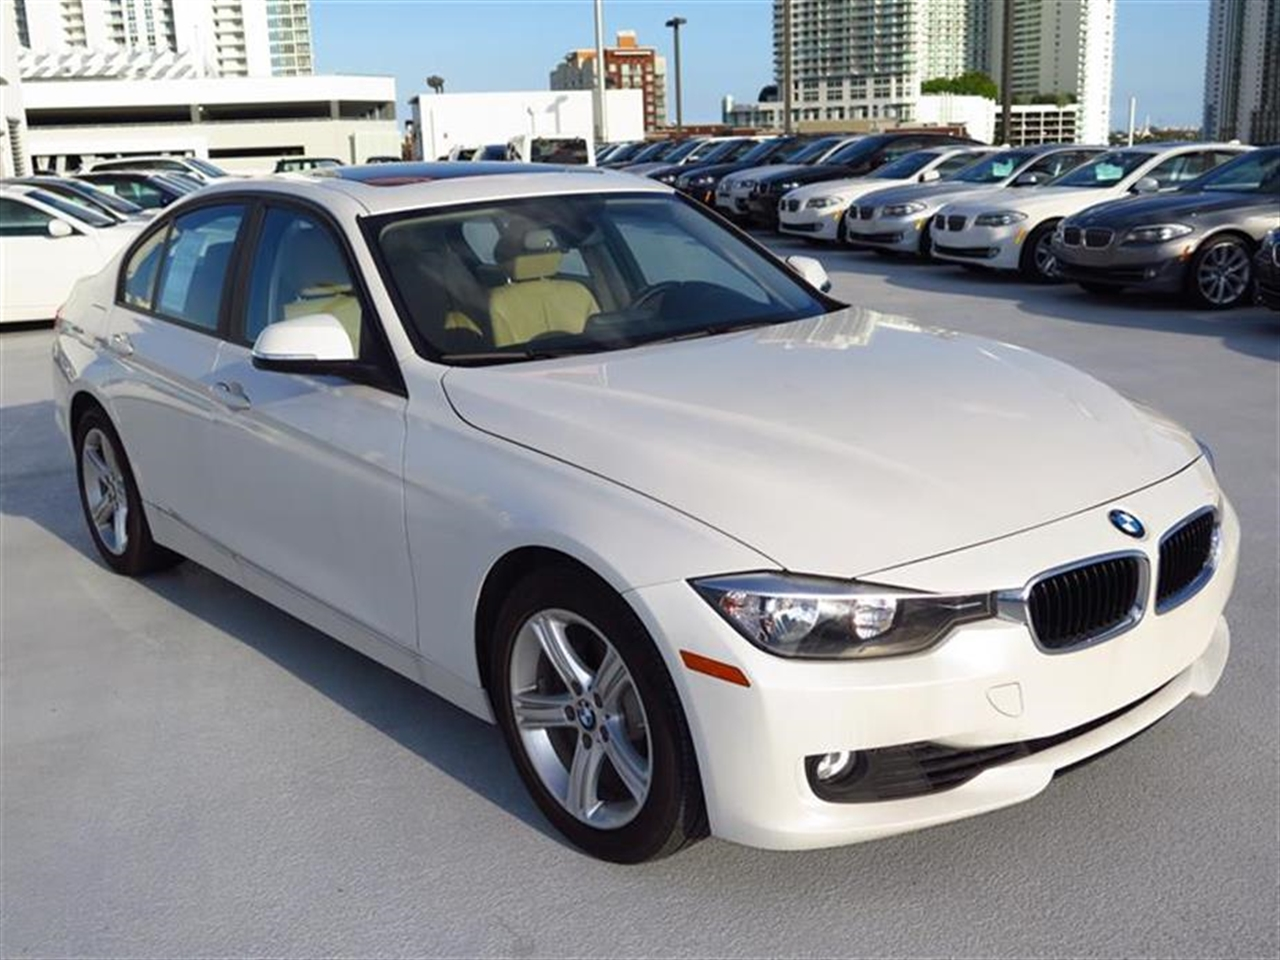 2013 BMW 3 SERIES 4dr Sdn 328i RWD 16330 miles 2-way headrests with active head restraints 3-spo